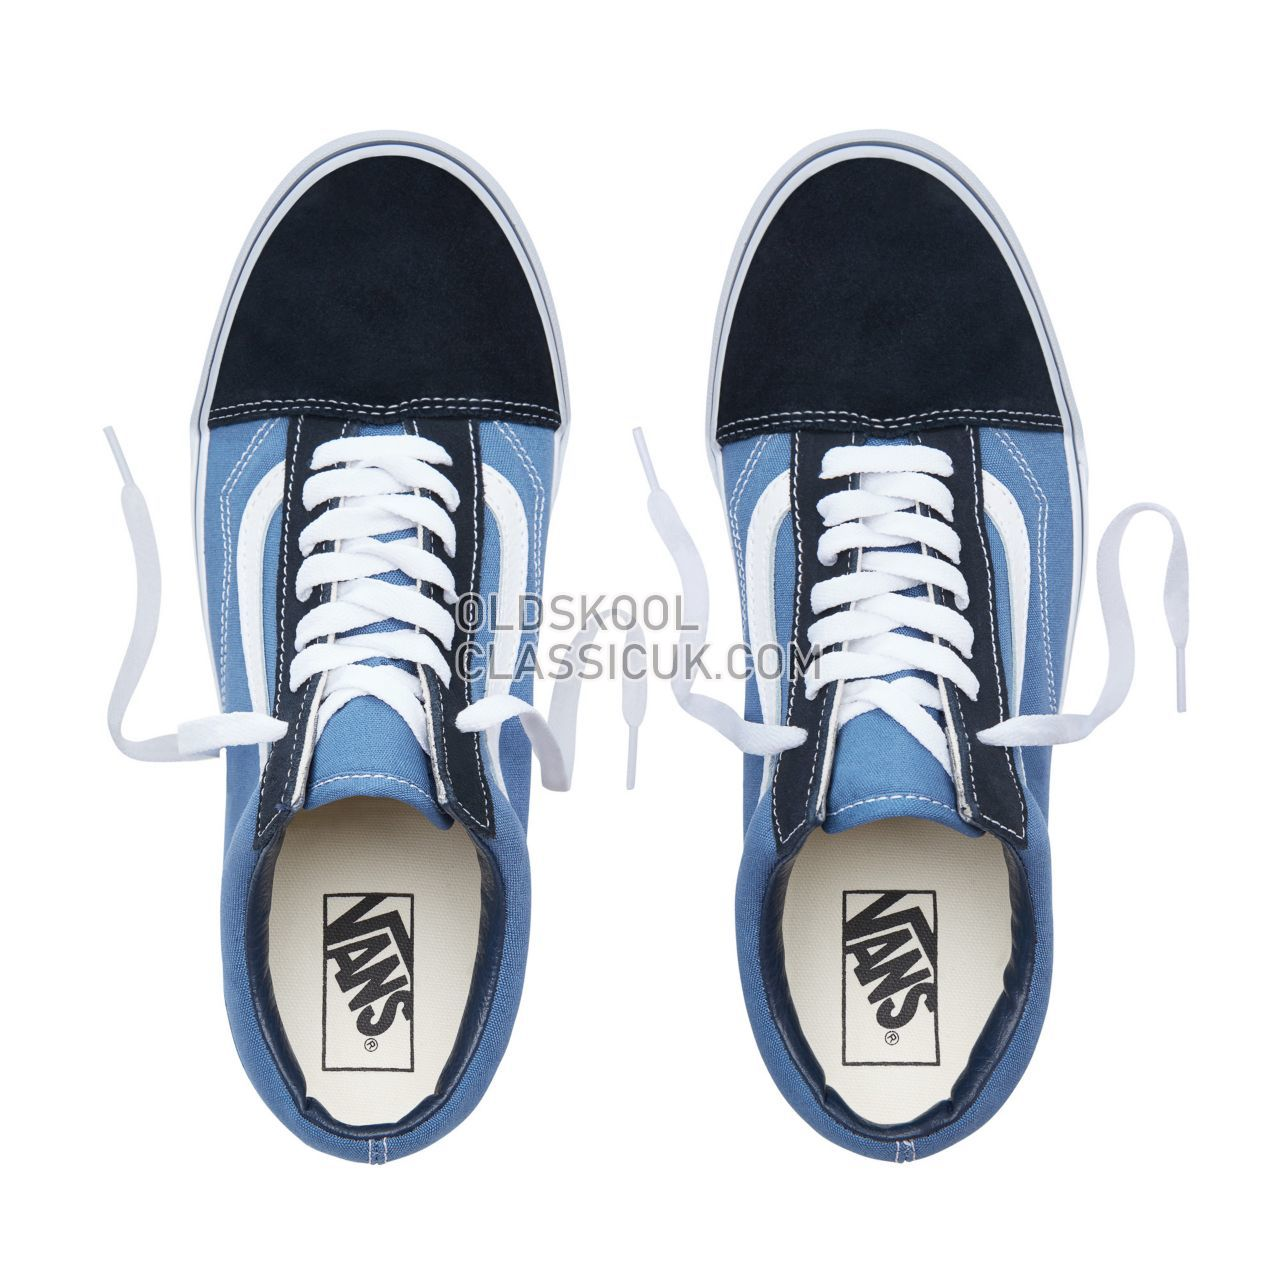 Vans Old Skool Sneakers Mens Womens Unisex Navy VN000D3HNVY Shoes